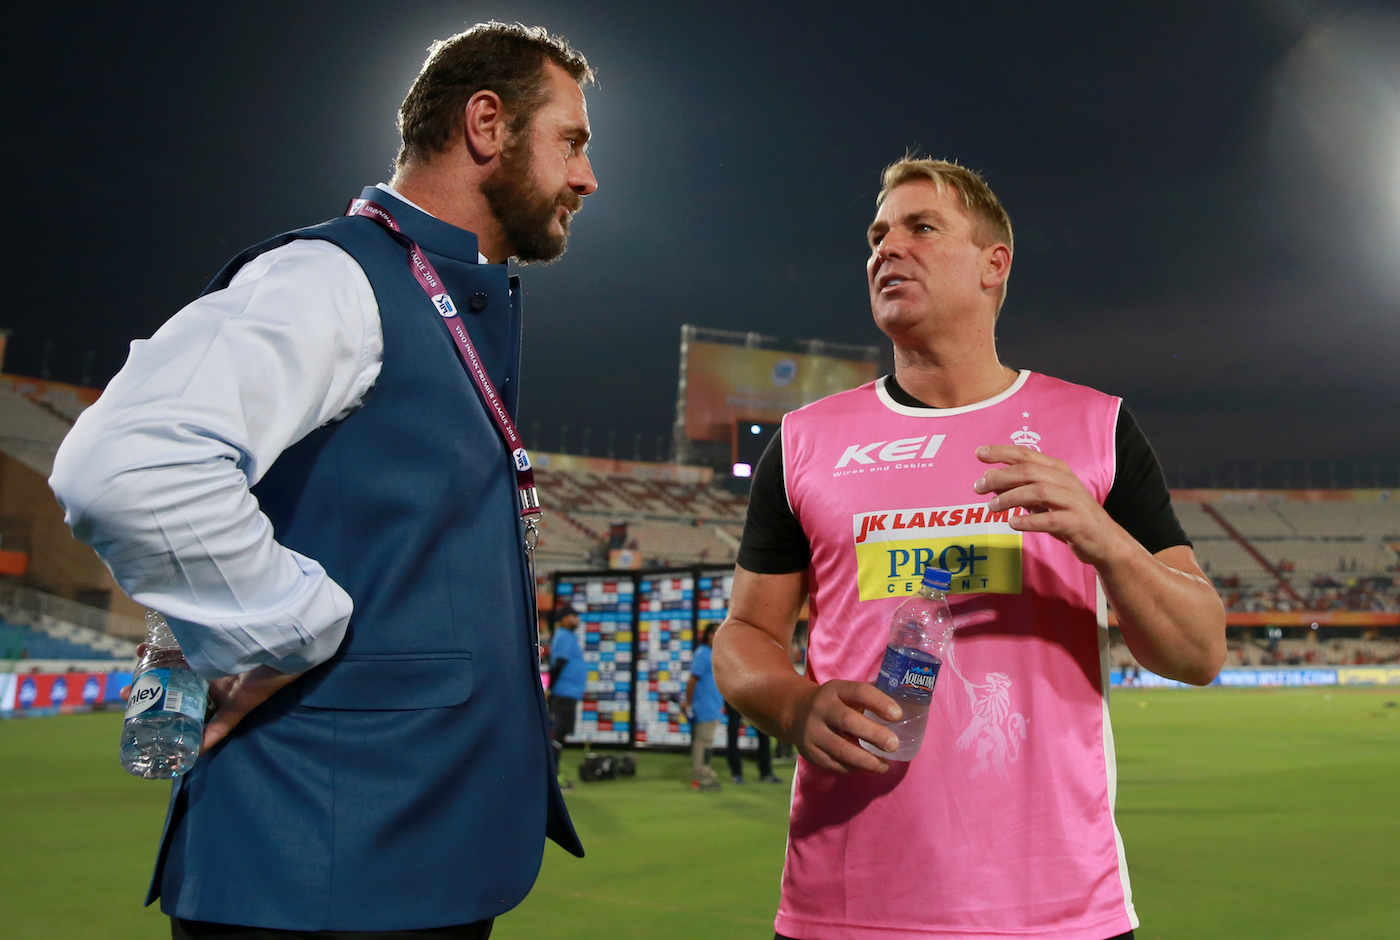 Shane Warne, the Rajasthan Royals mentor, talks to commentator Simon Doull  | Photo | Global | ESPNcricinfo.com